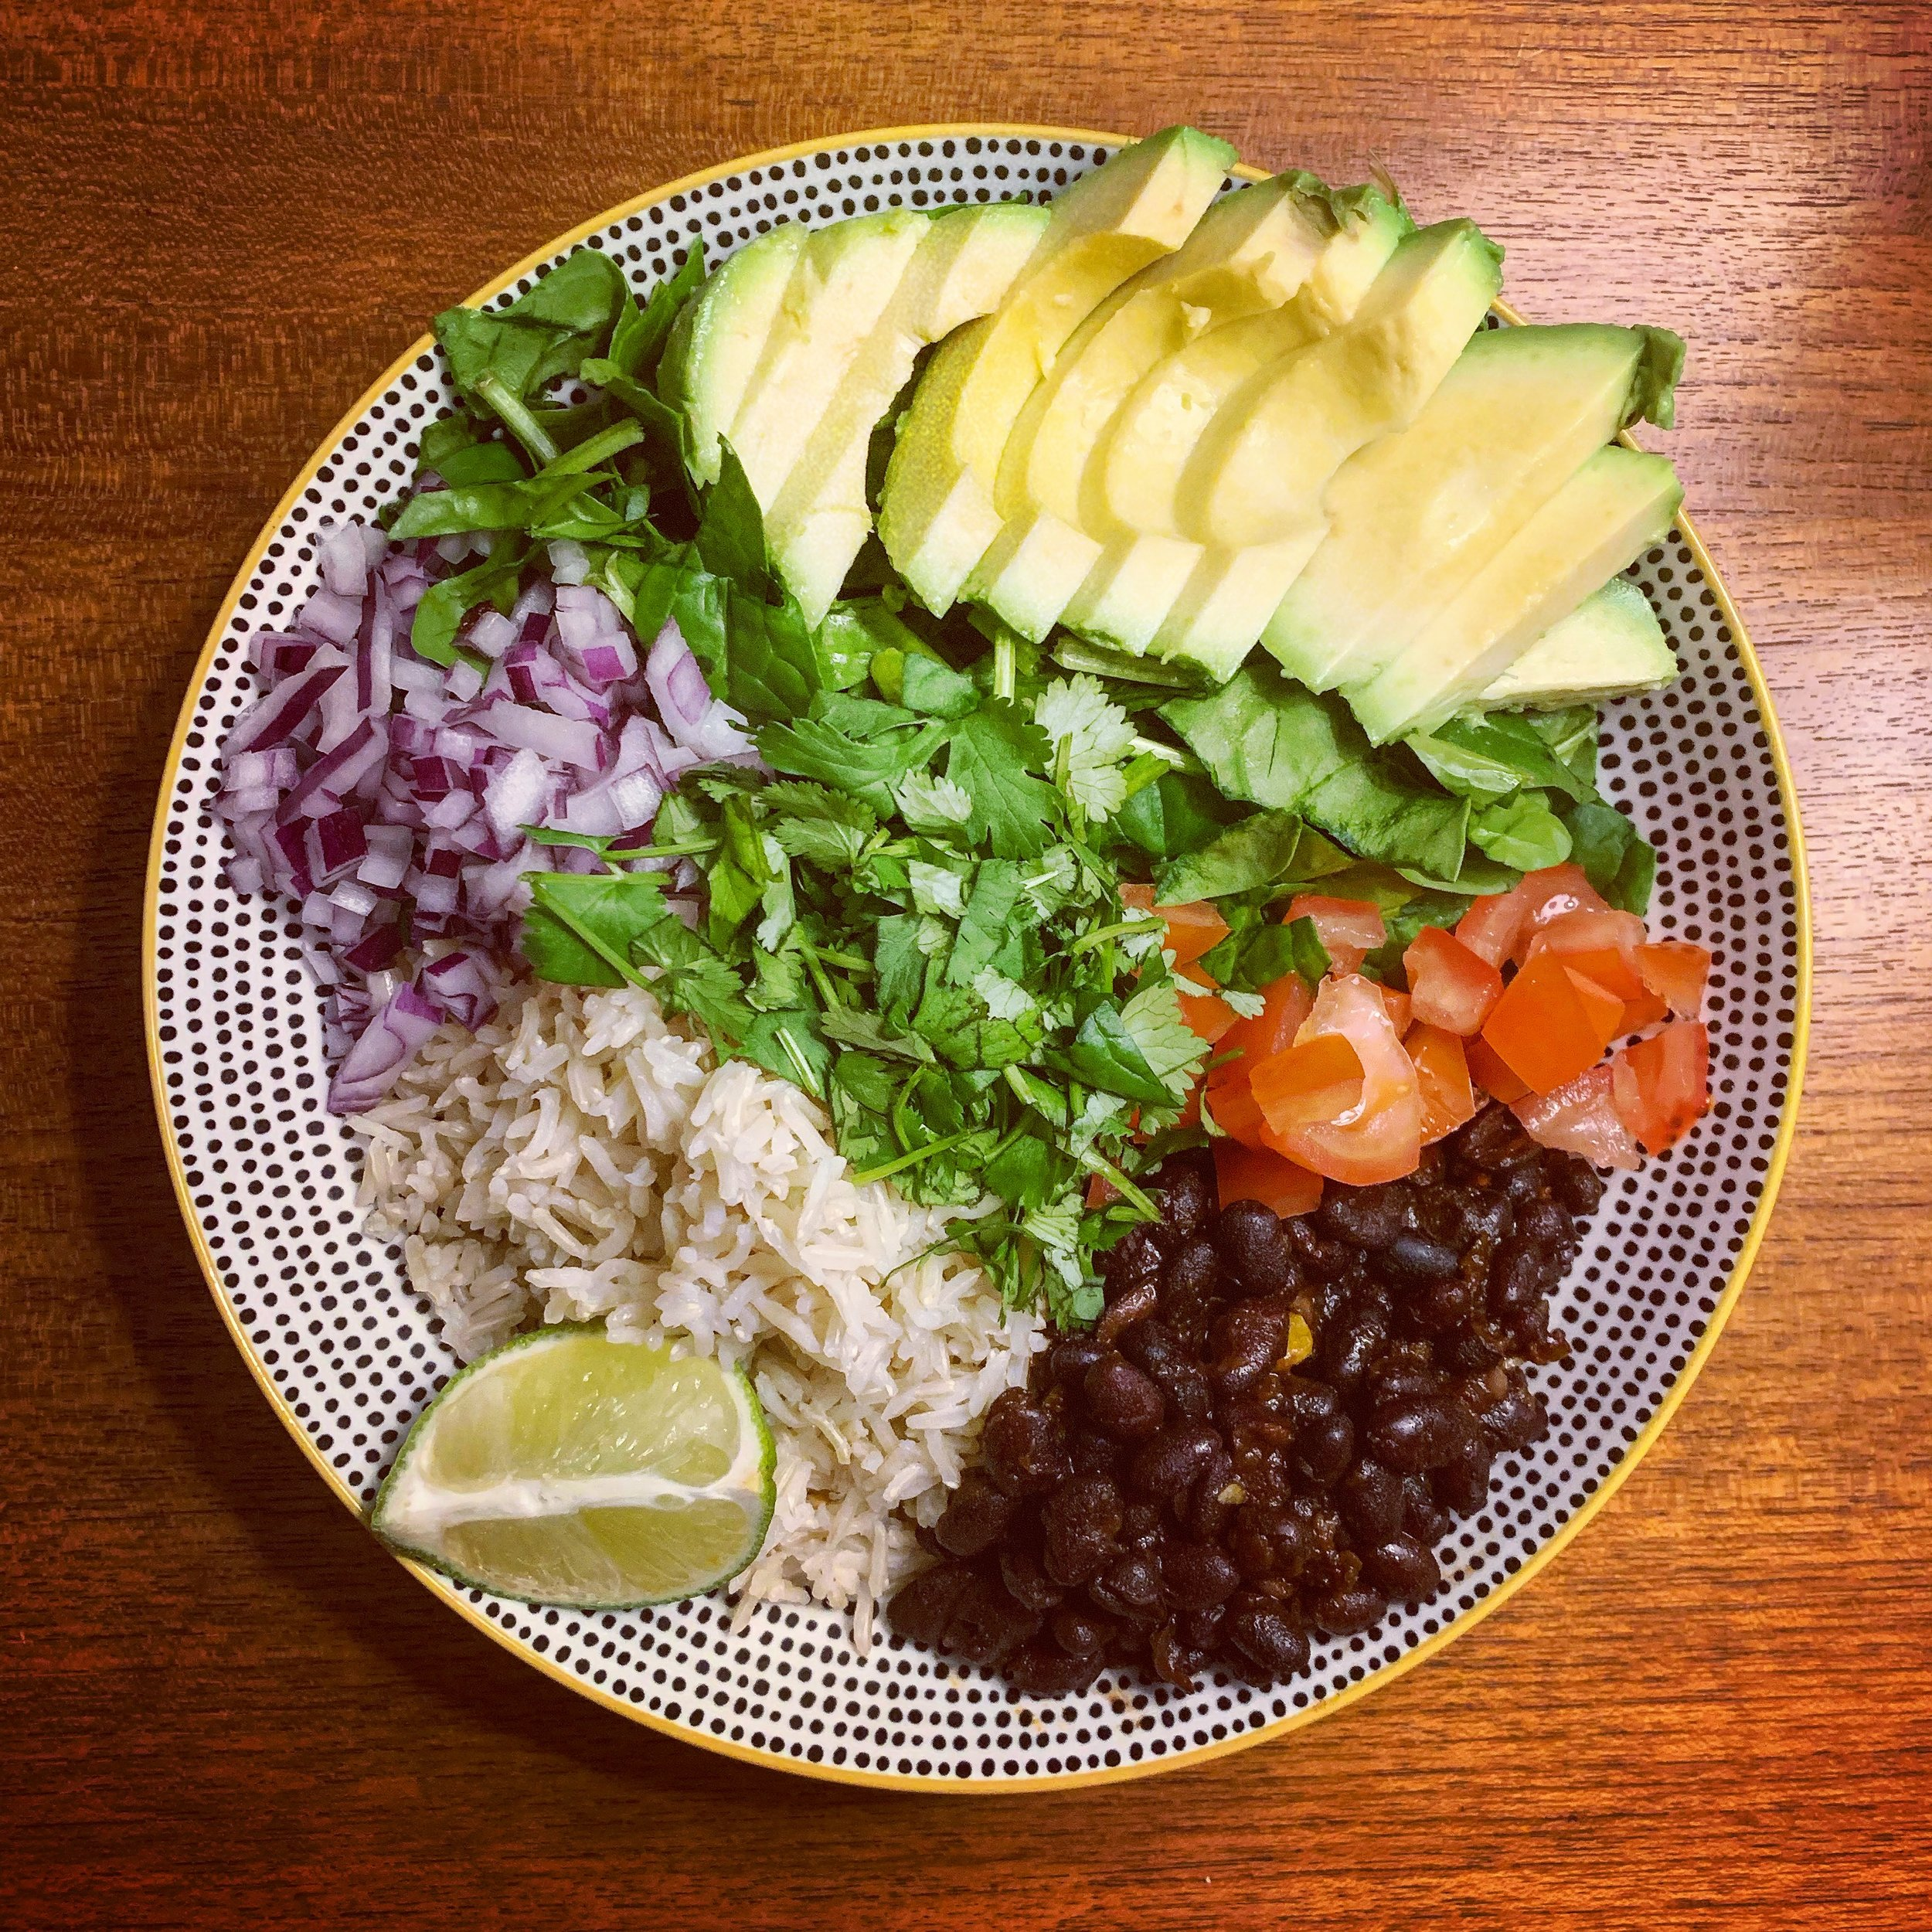 Burrito Bowl with Chipotle Black Beans